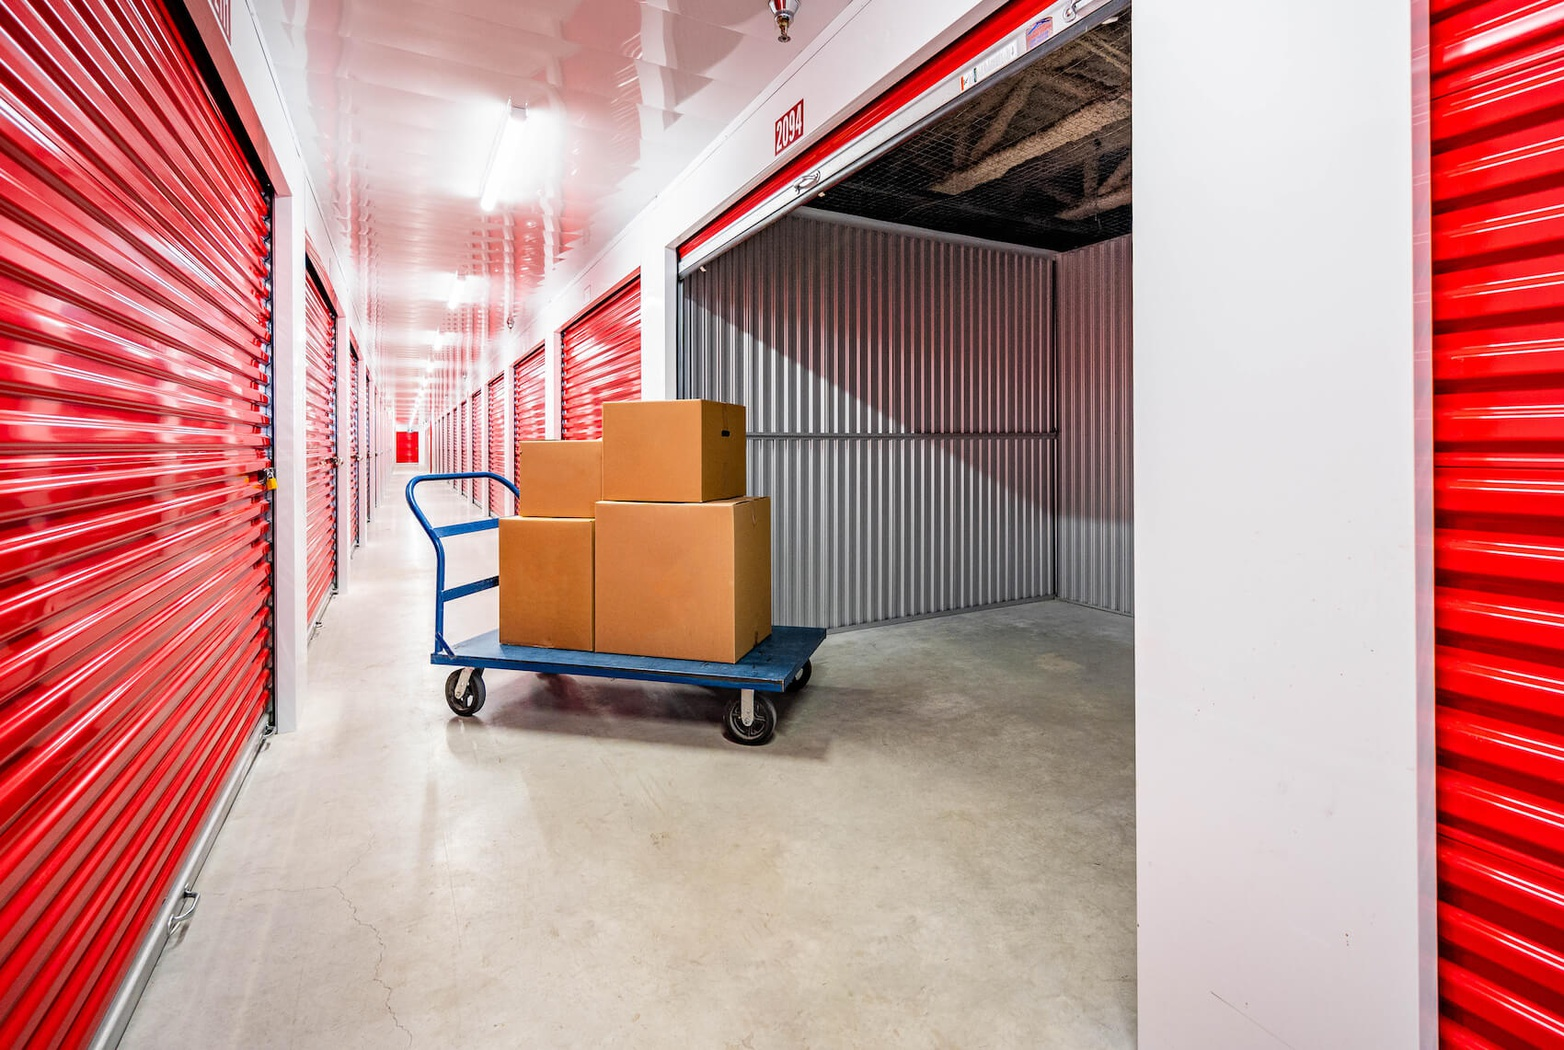 Rent Toronto Downsview storage units at 55 Bridgeland Ave. We offer a wide-range of affordable self storage units and your first 4 weeks are free!